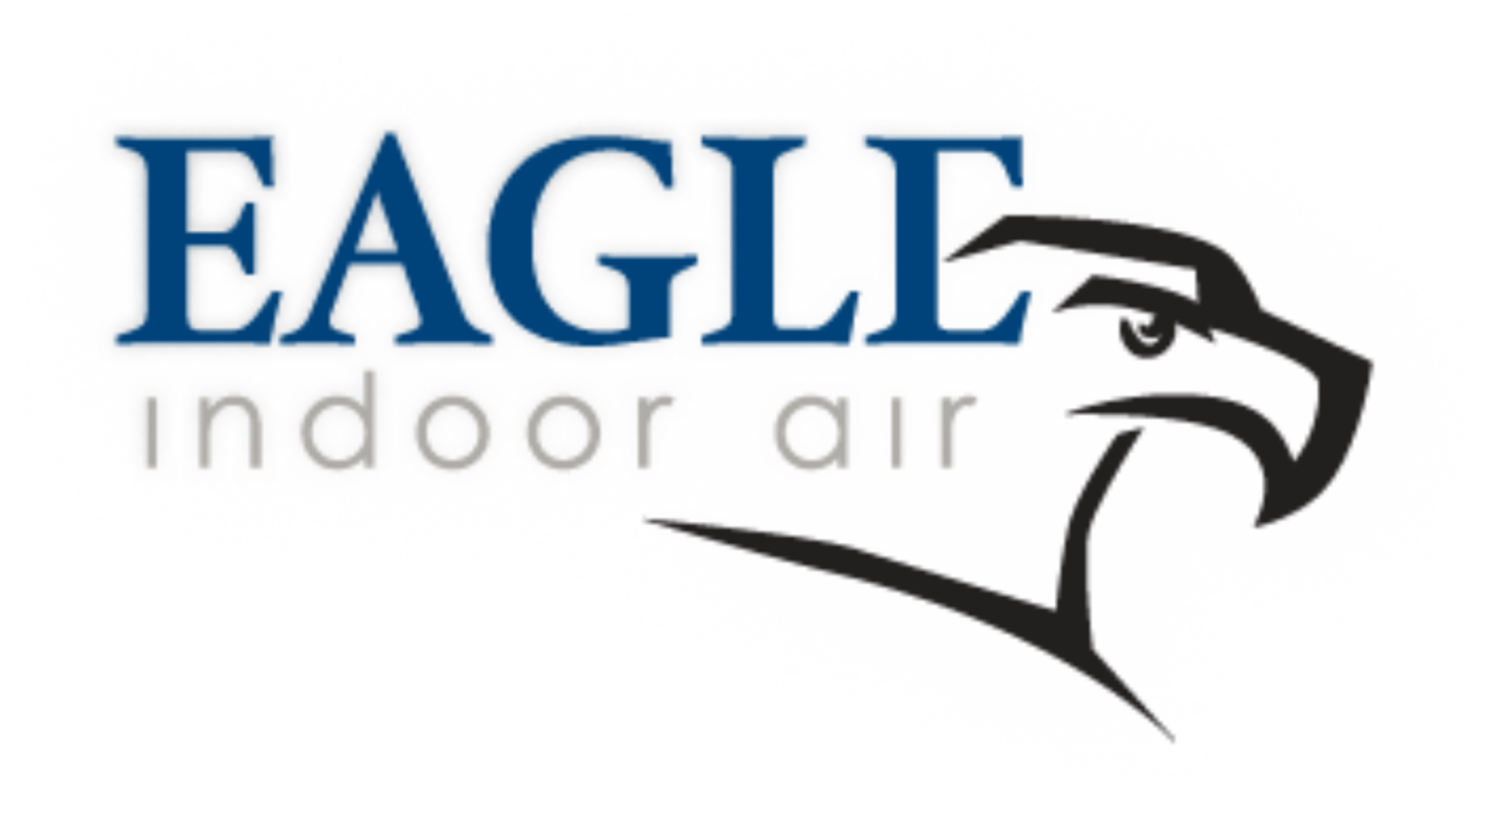 Eagle Indoor Air